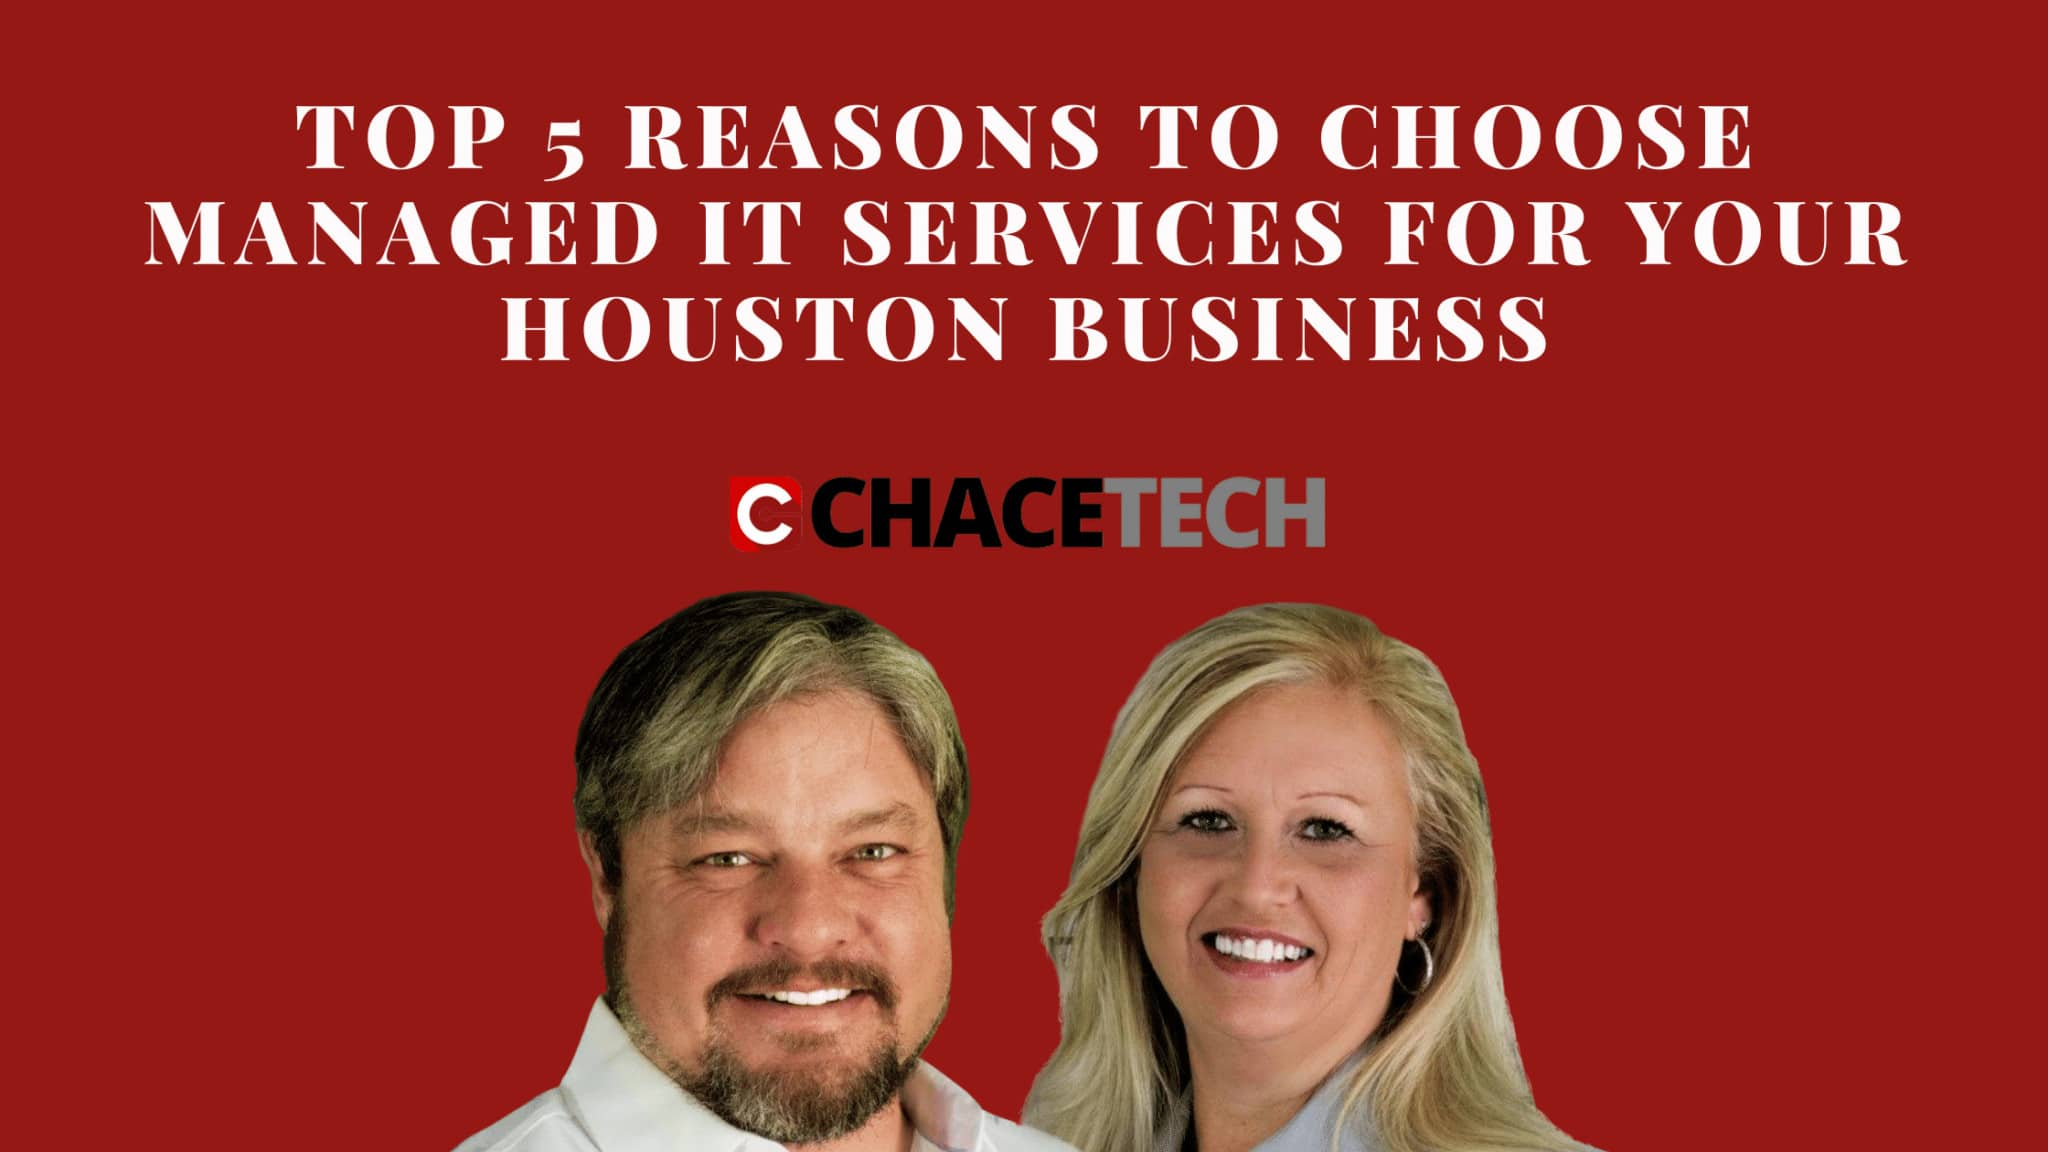 Top 5 Reasons to Choose Managed IT Services for Your Houston Business